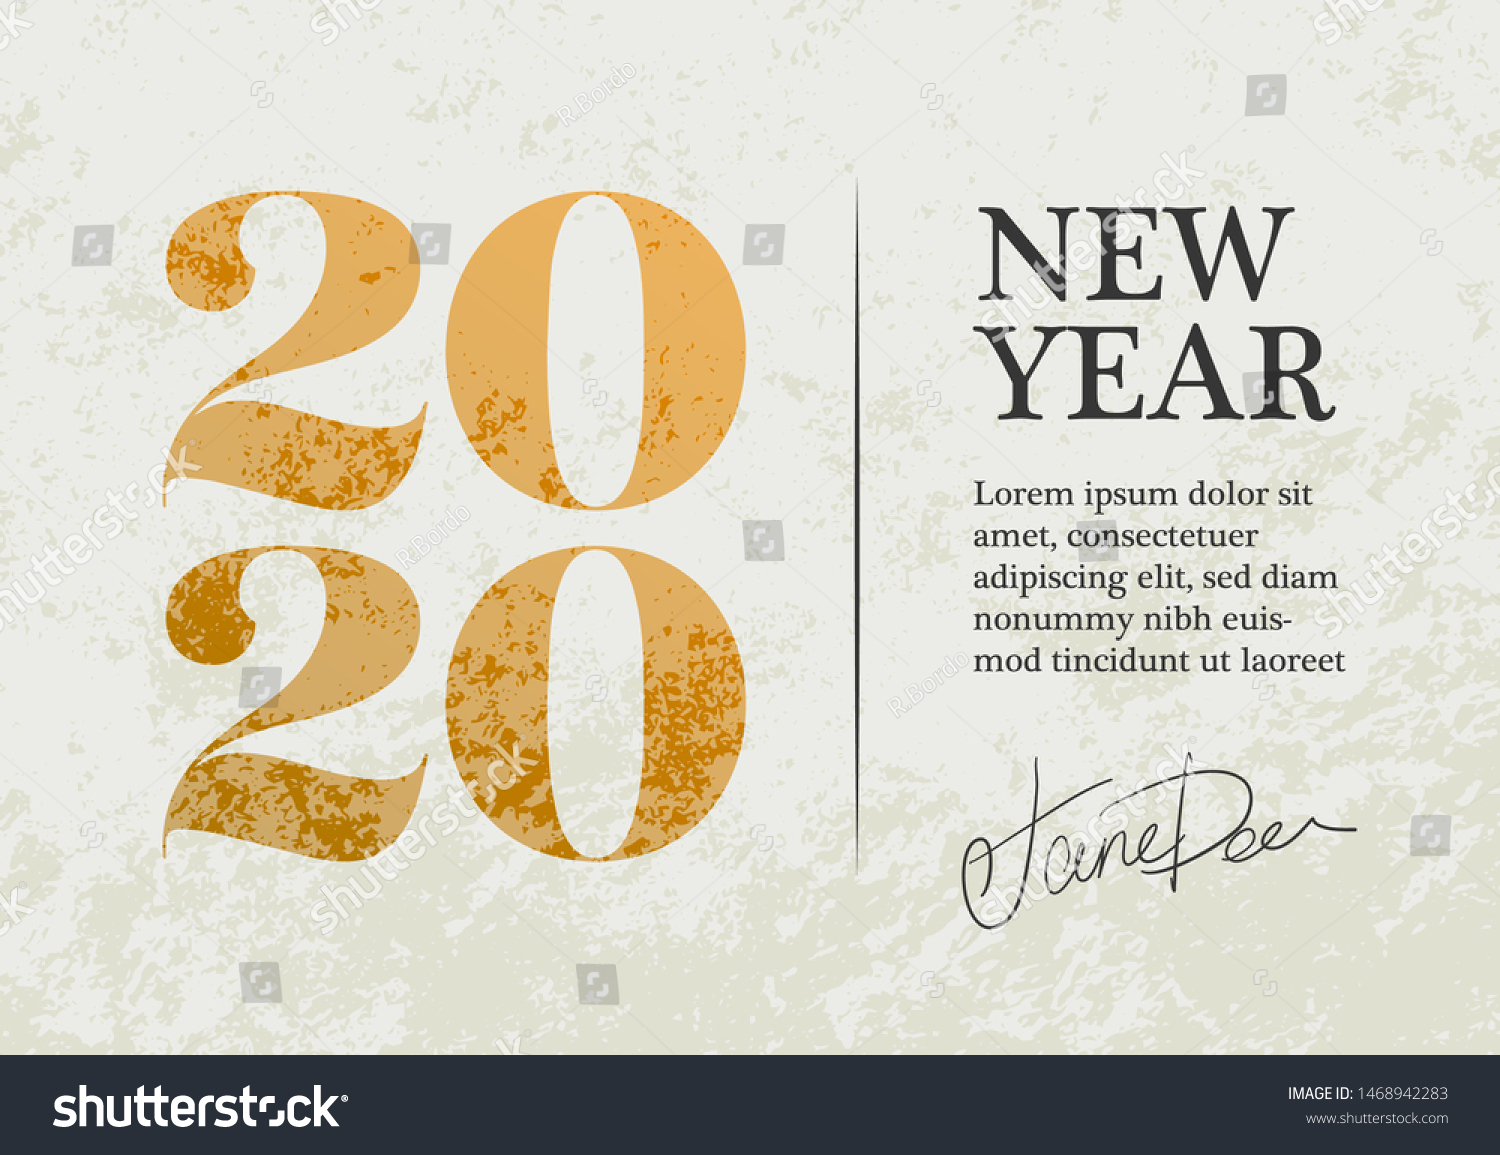 New Year 2020 Greeting Card Design Stock Vector (Royalty Free